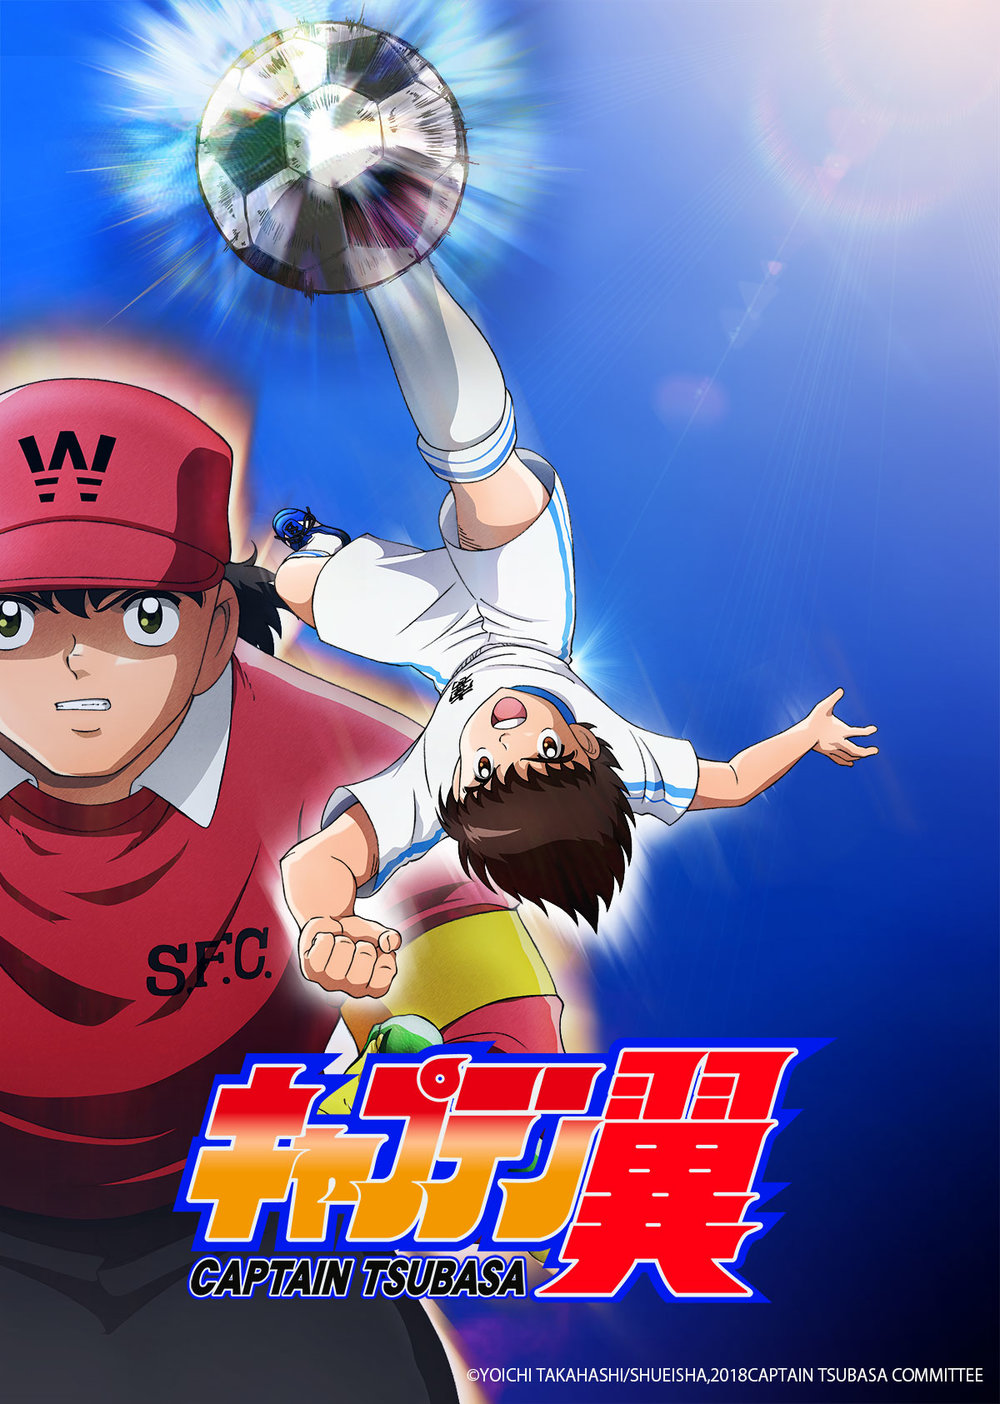 CaptainTsubasa-KeyVisual.jpg